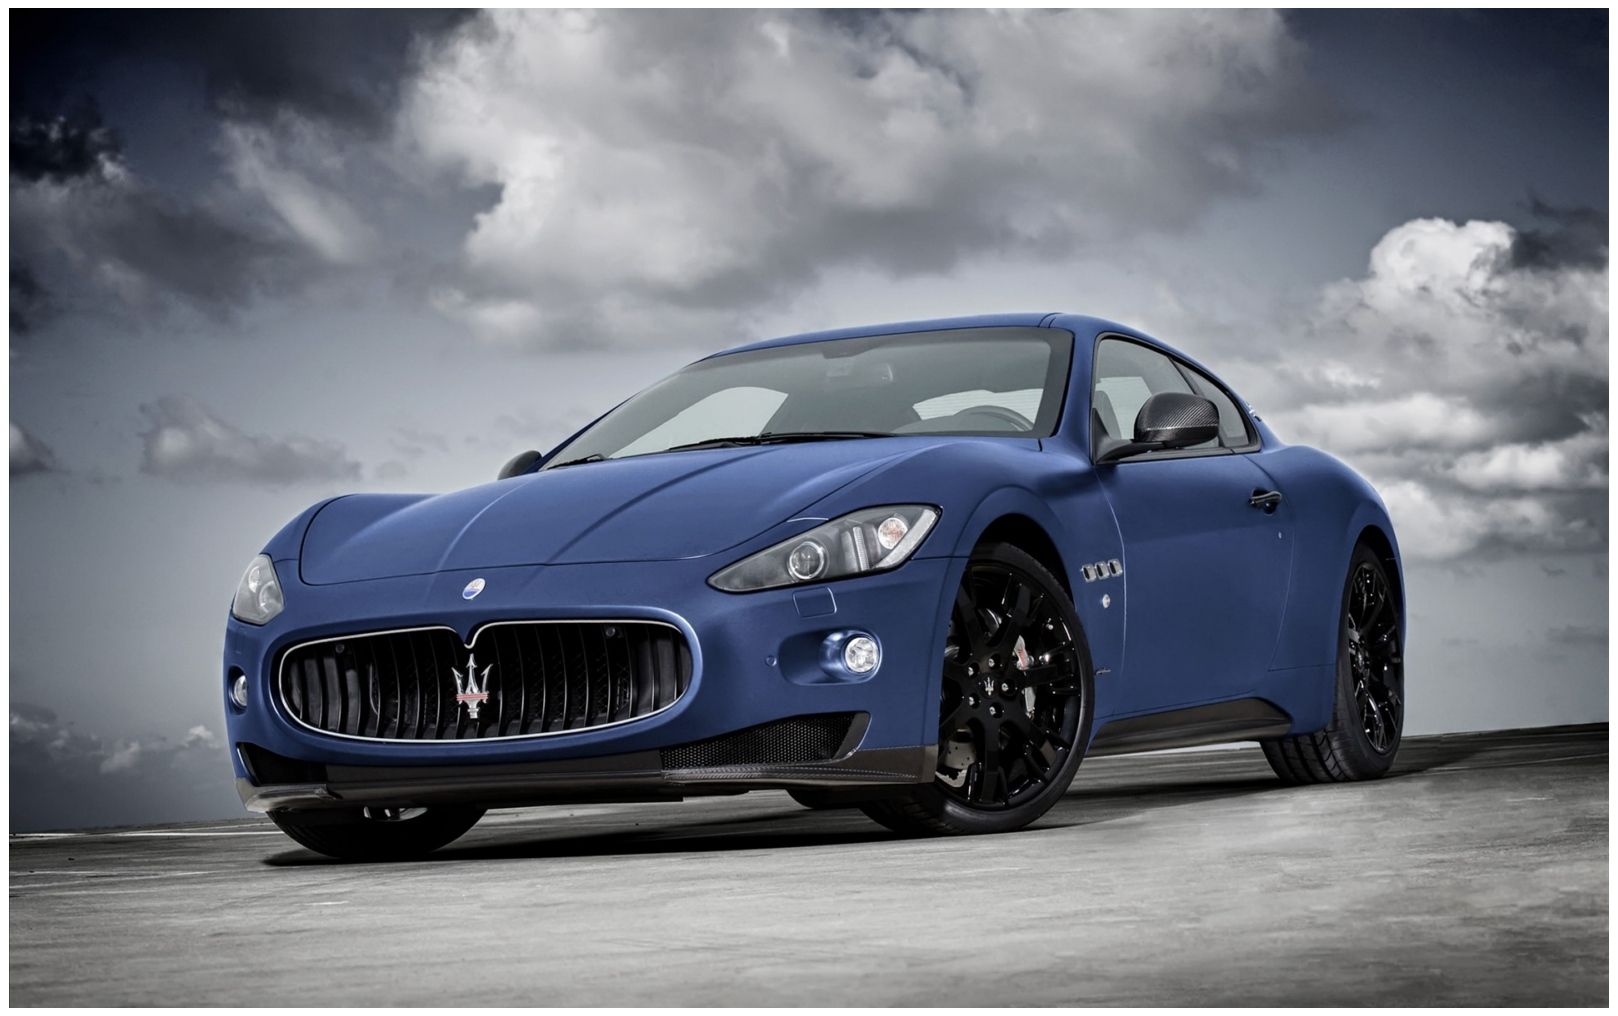 New Maserati Granturismo Hd Car Wallpaper Hd Walls